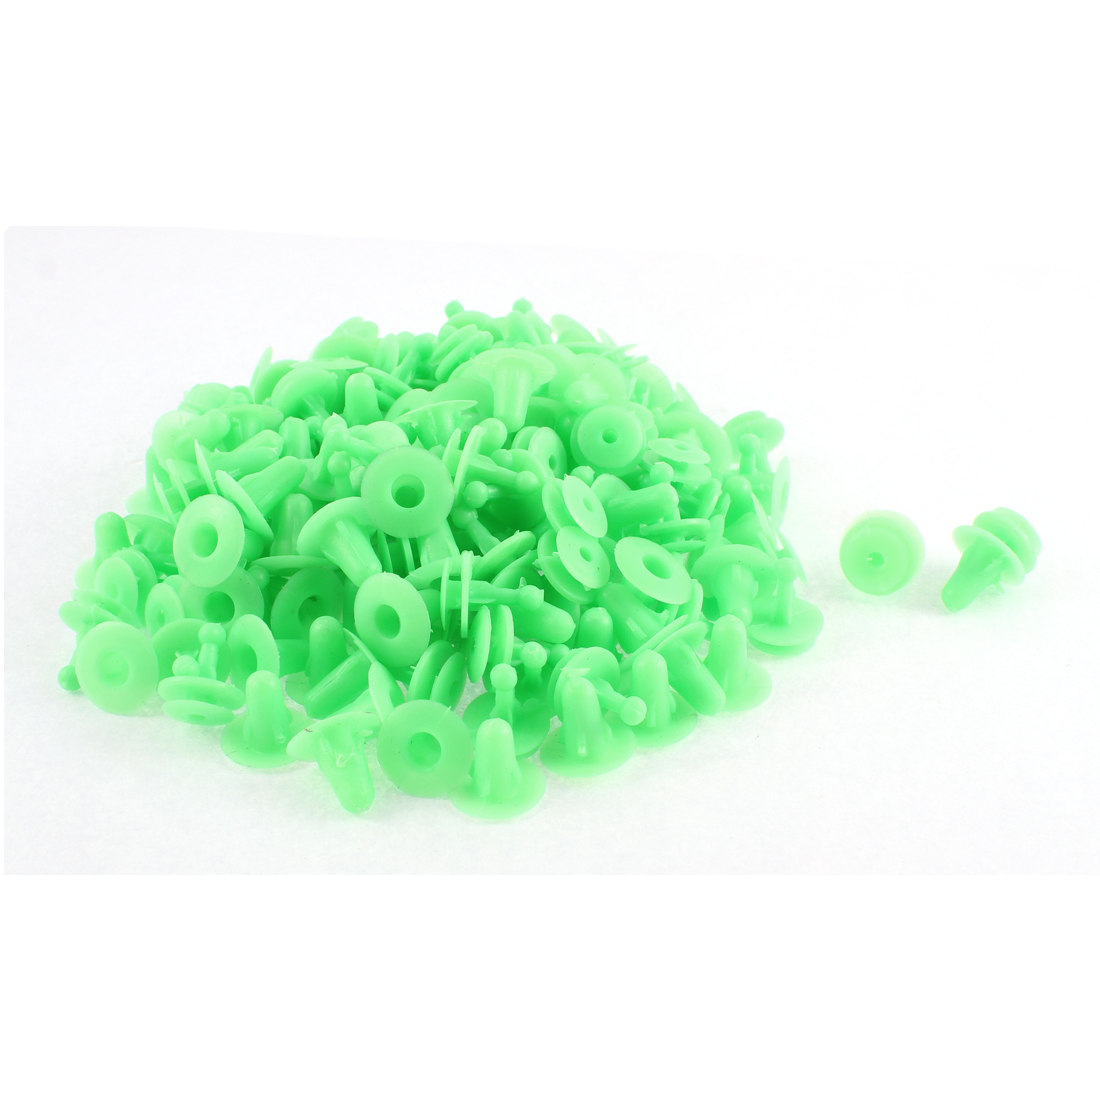 Unique Bargains 100 Pcs Green Plastic Push-Type Moulding Trim Panel Hood Rivet